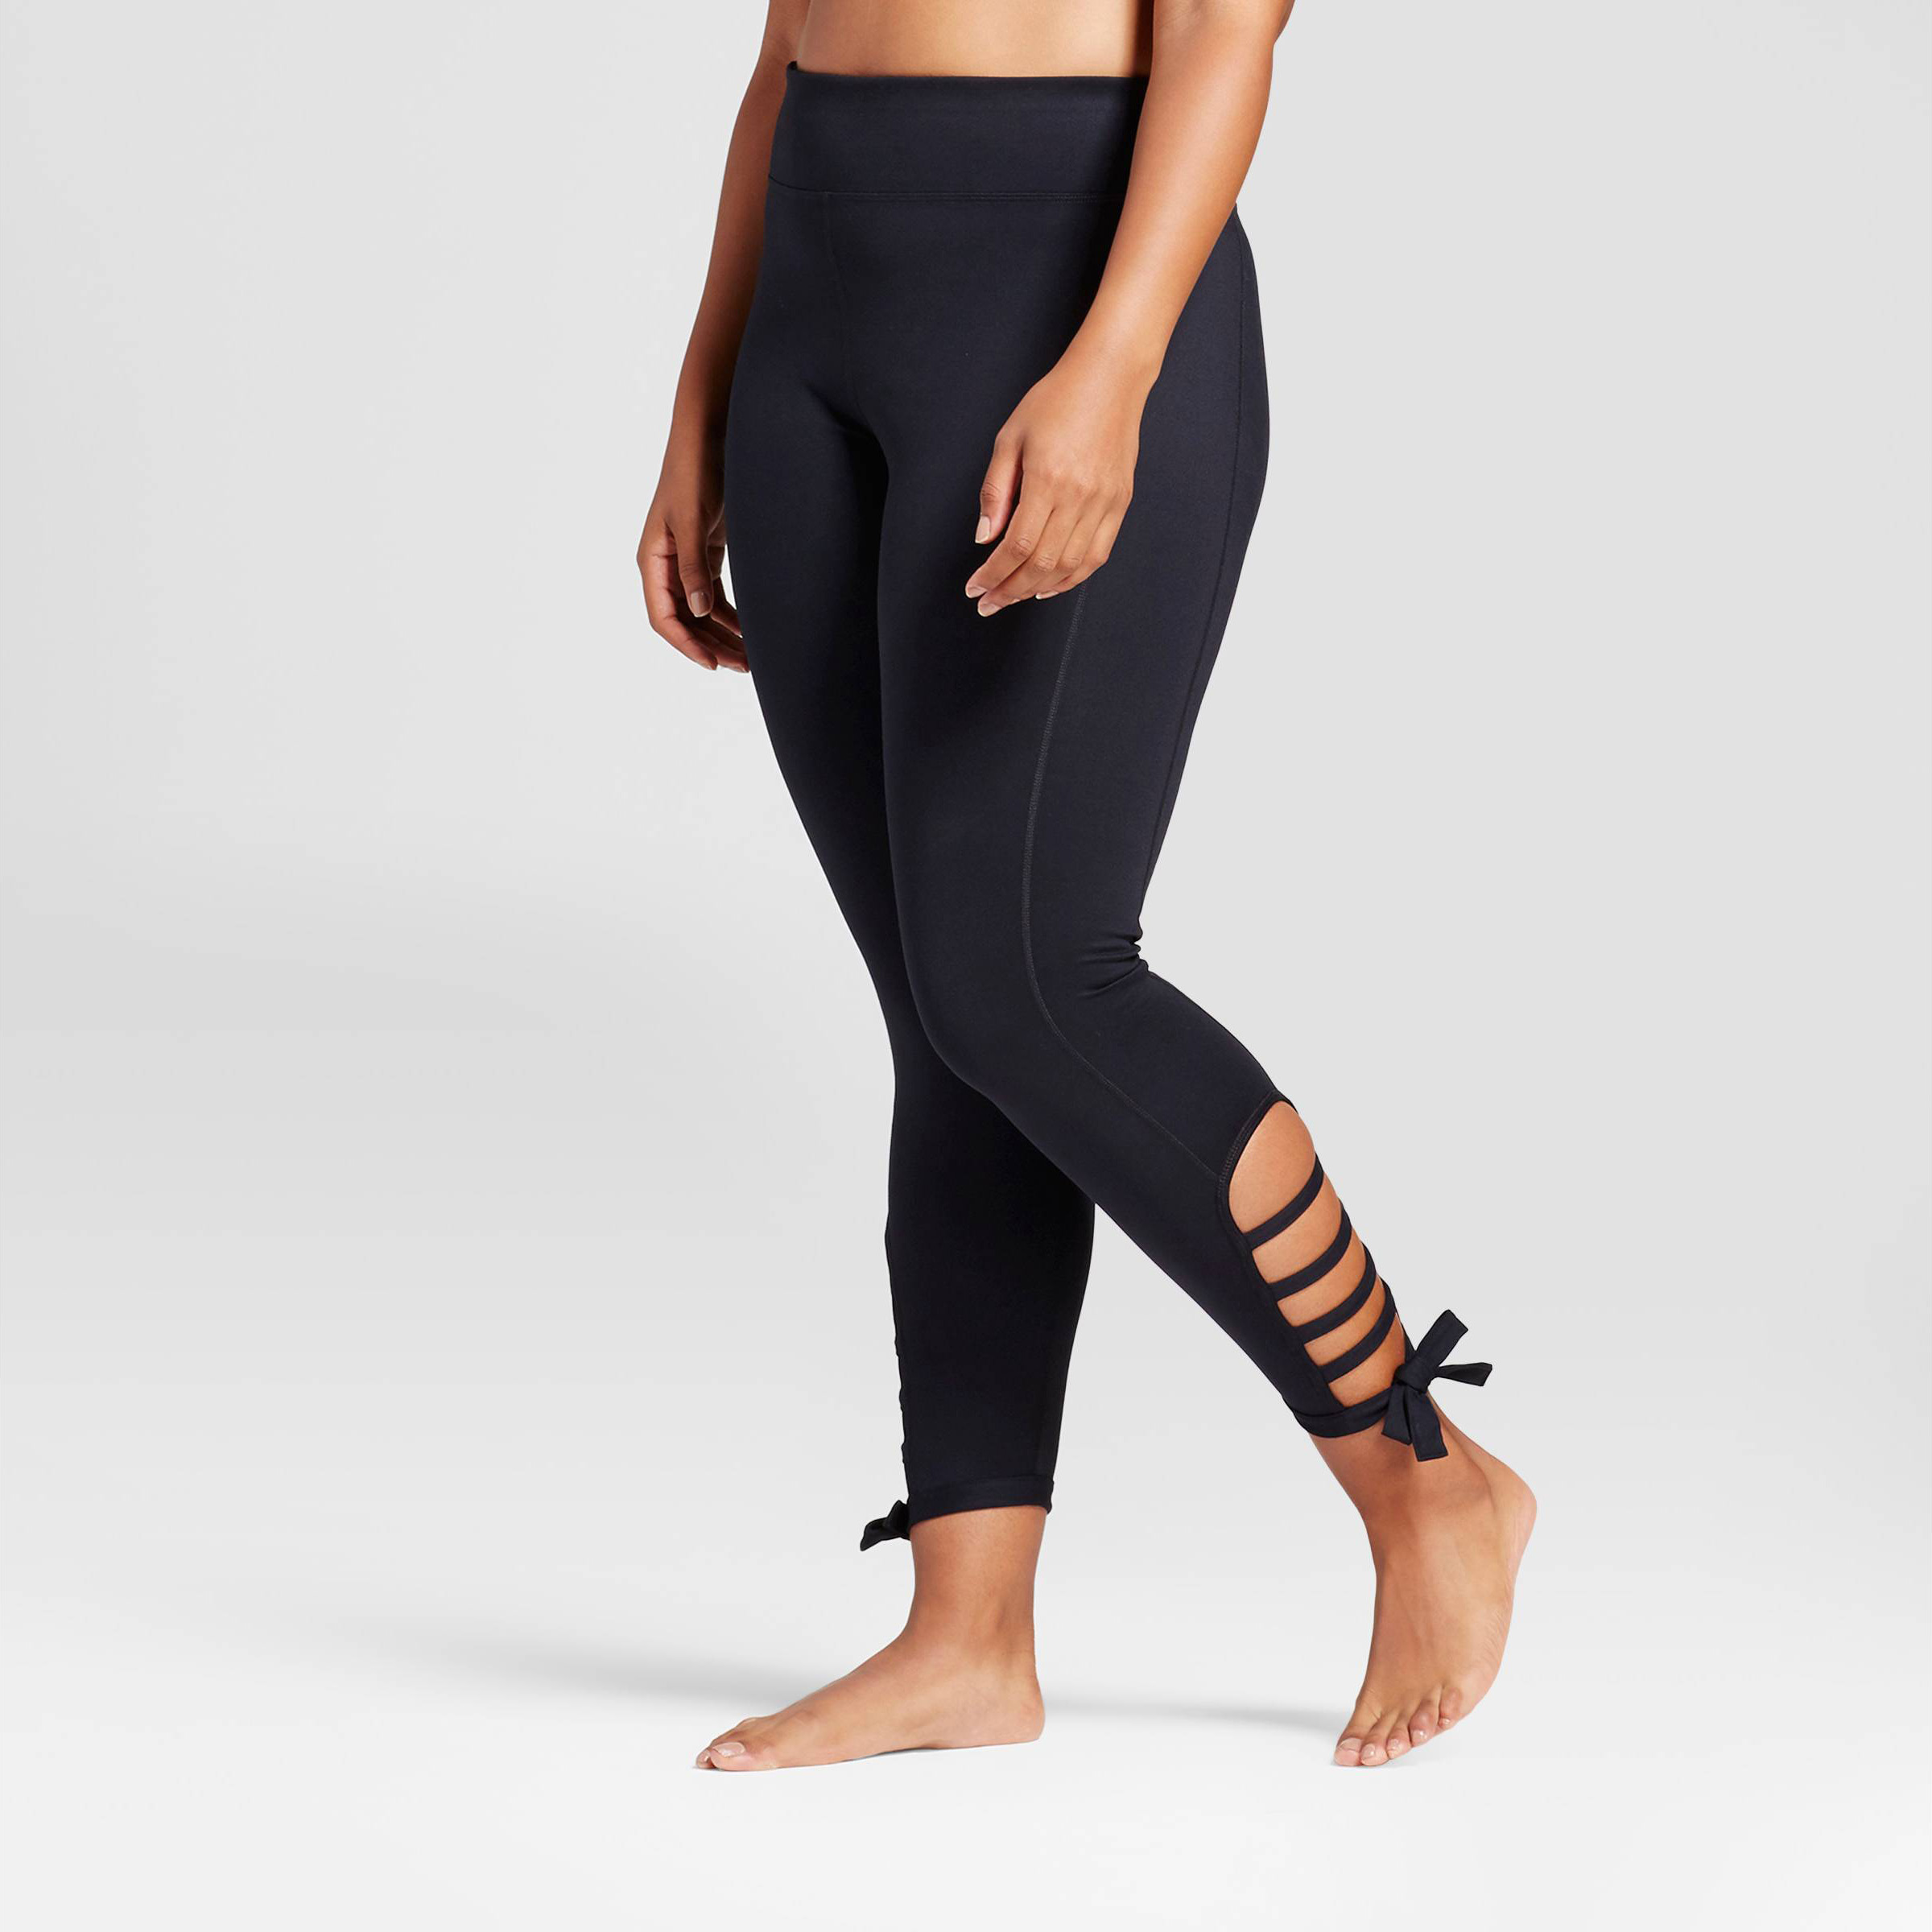 fd5d0c173227d JoyLab Women s Plus Comfort Side Tie 7 8 Leggings  31.99. Versatile  athletic wear has made all the difference in our wardrobes and we can t  wait to add ...